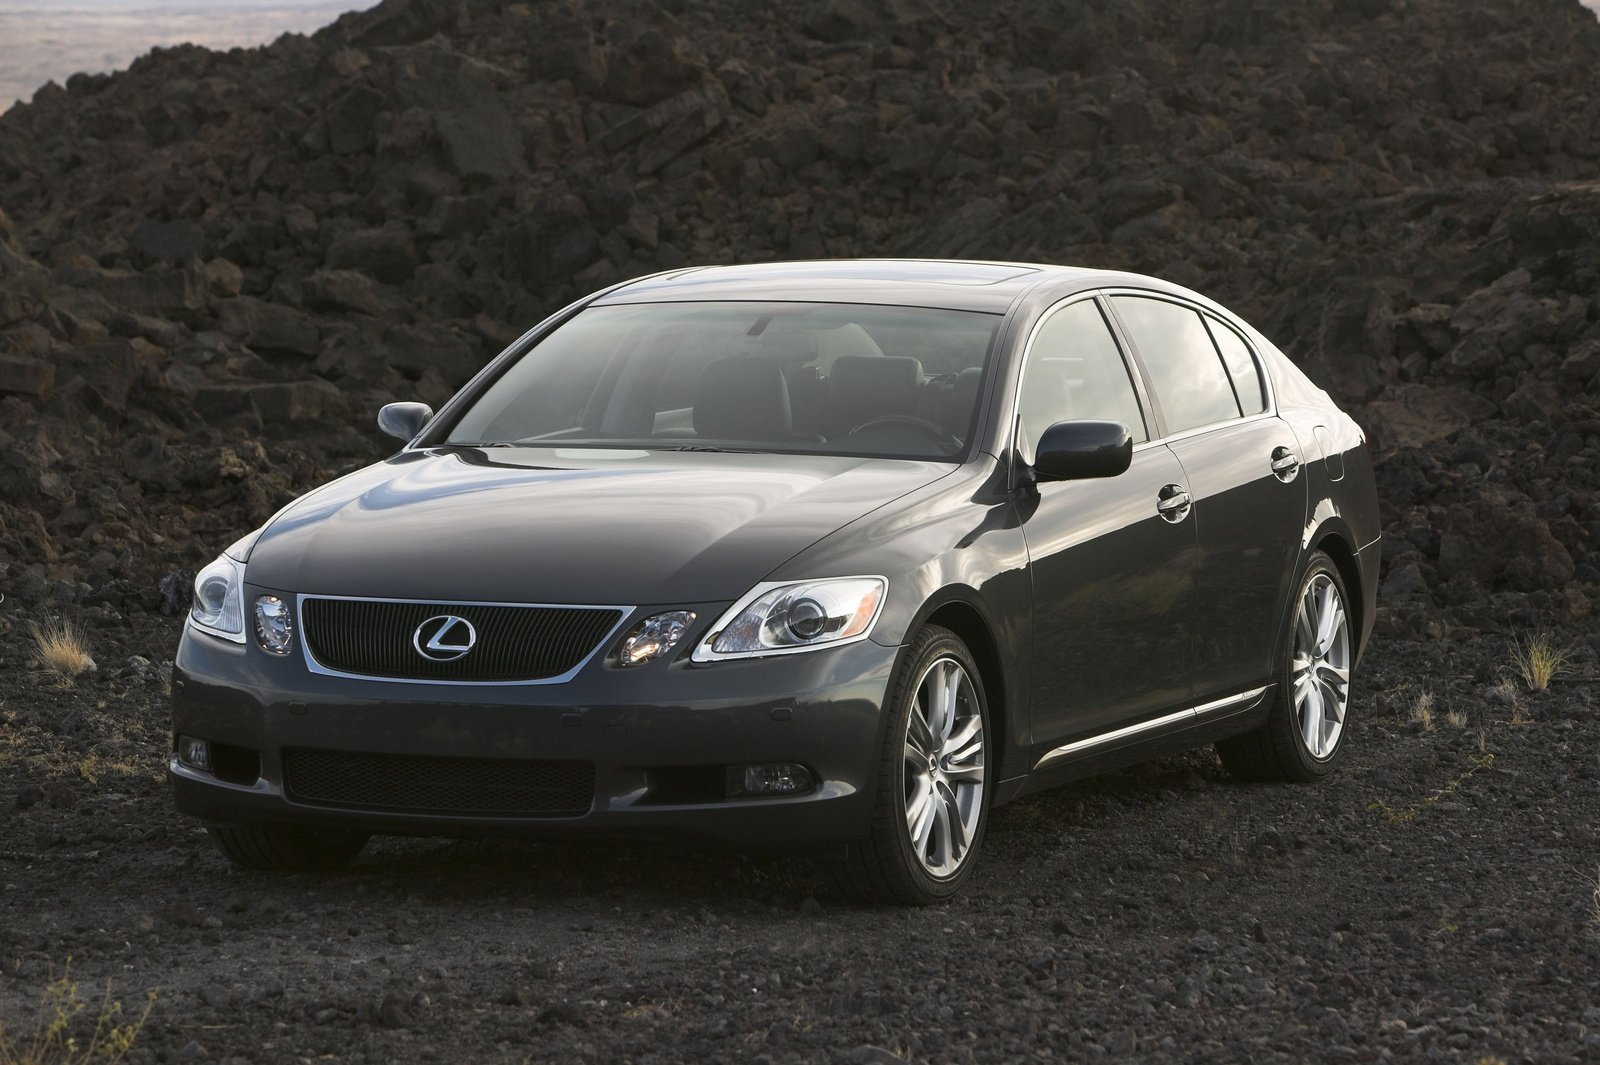 2007 lexus gs 450h review gallery top speed. Black Bedroom Furniture Sets. Home Design Ideas